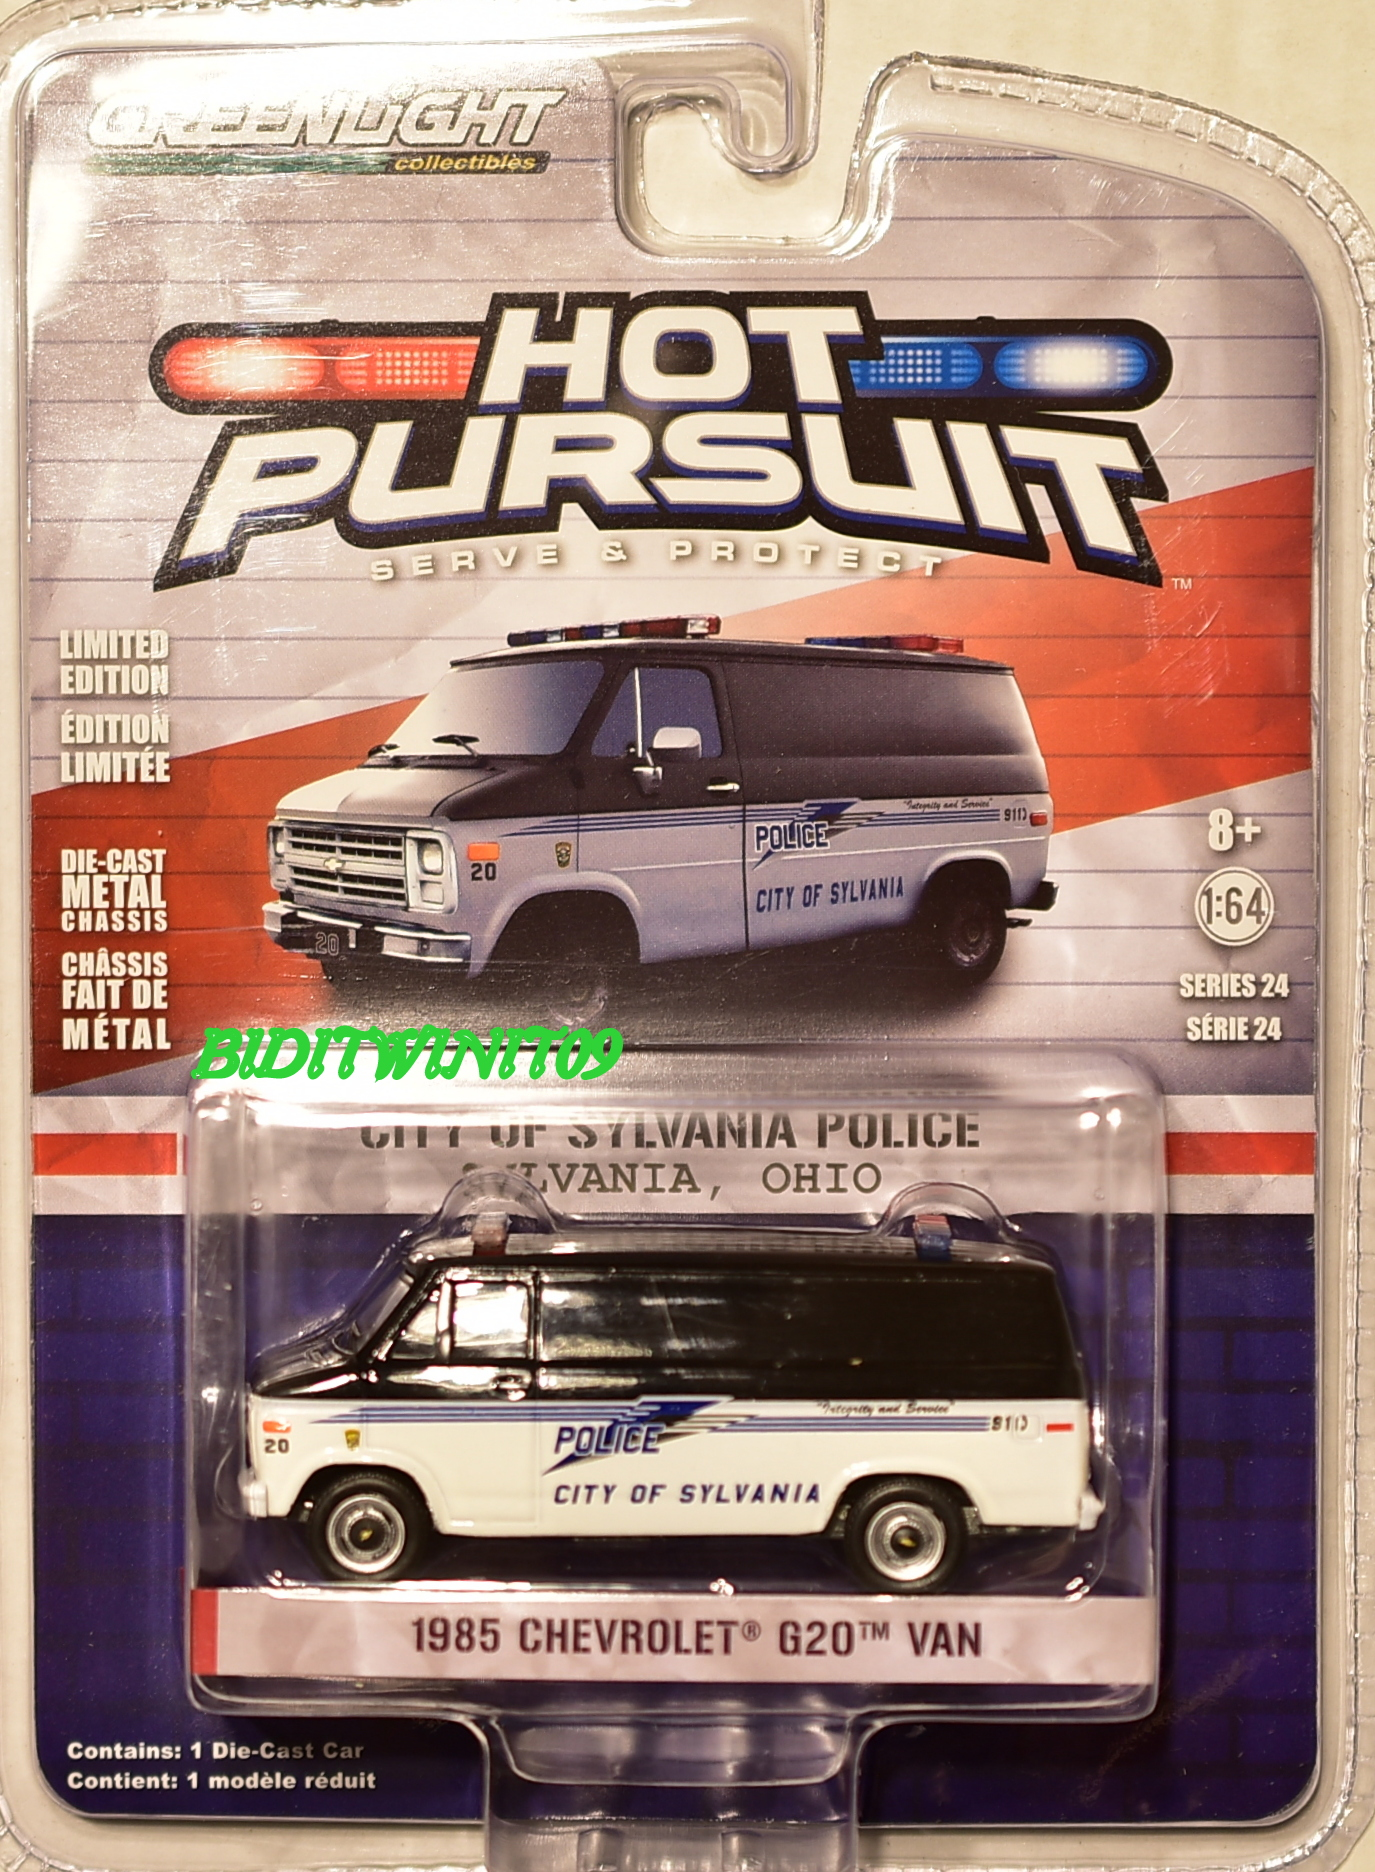 GREENLIGHT 2017 HOT PURSUIT SERIES 24 1985 CHEVROLET G20 VAN POLICE SCALE 1:64